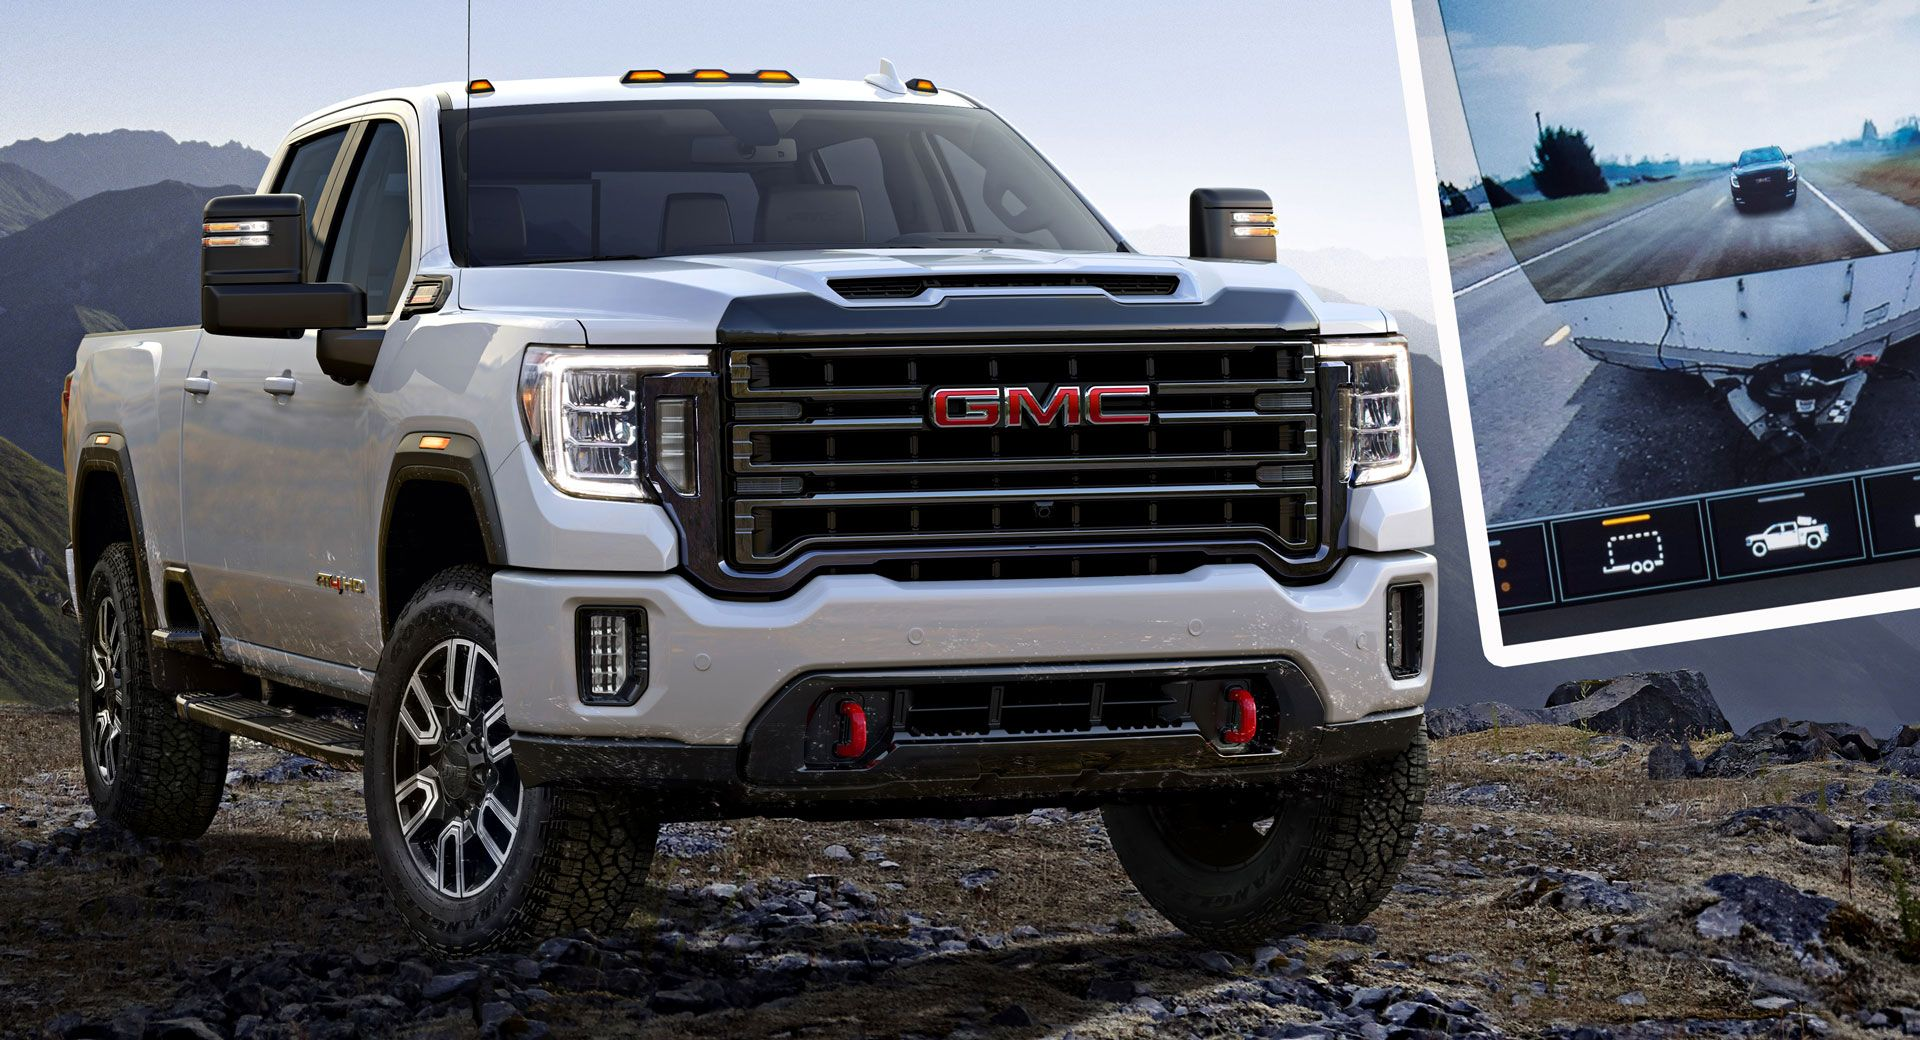 2020 Gmc Sierra Hd Has Brains Brawn And 15 Cameras That Let You See Through Its Trailer In 2020 Gmc Gmc Sierra Ls Engine